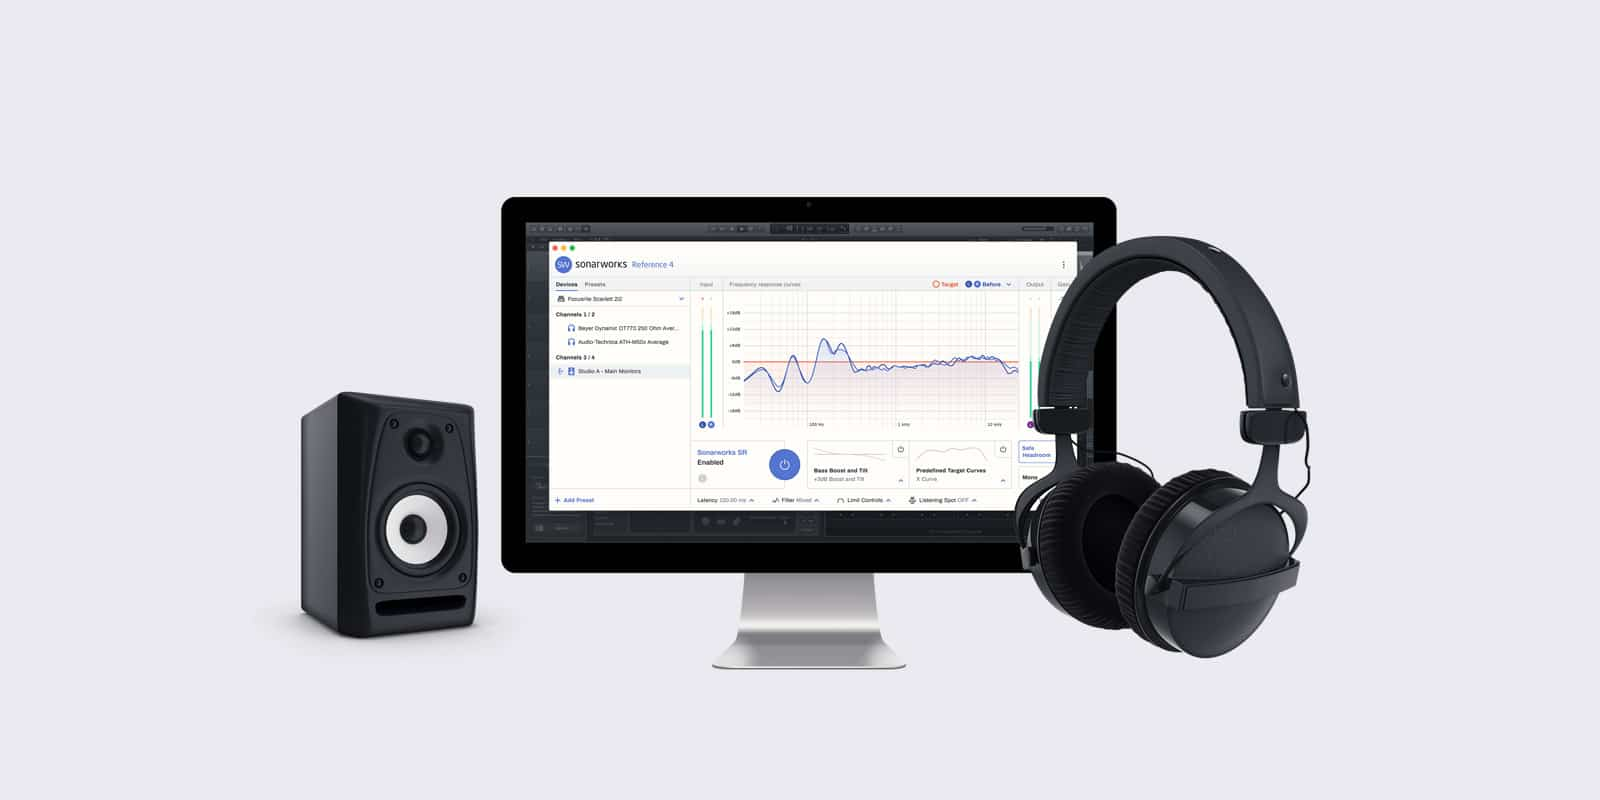 Sonarworks' Reference 4.4. Adds Multiple Device Presets, New Headphone Profiles